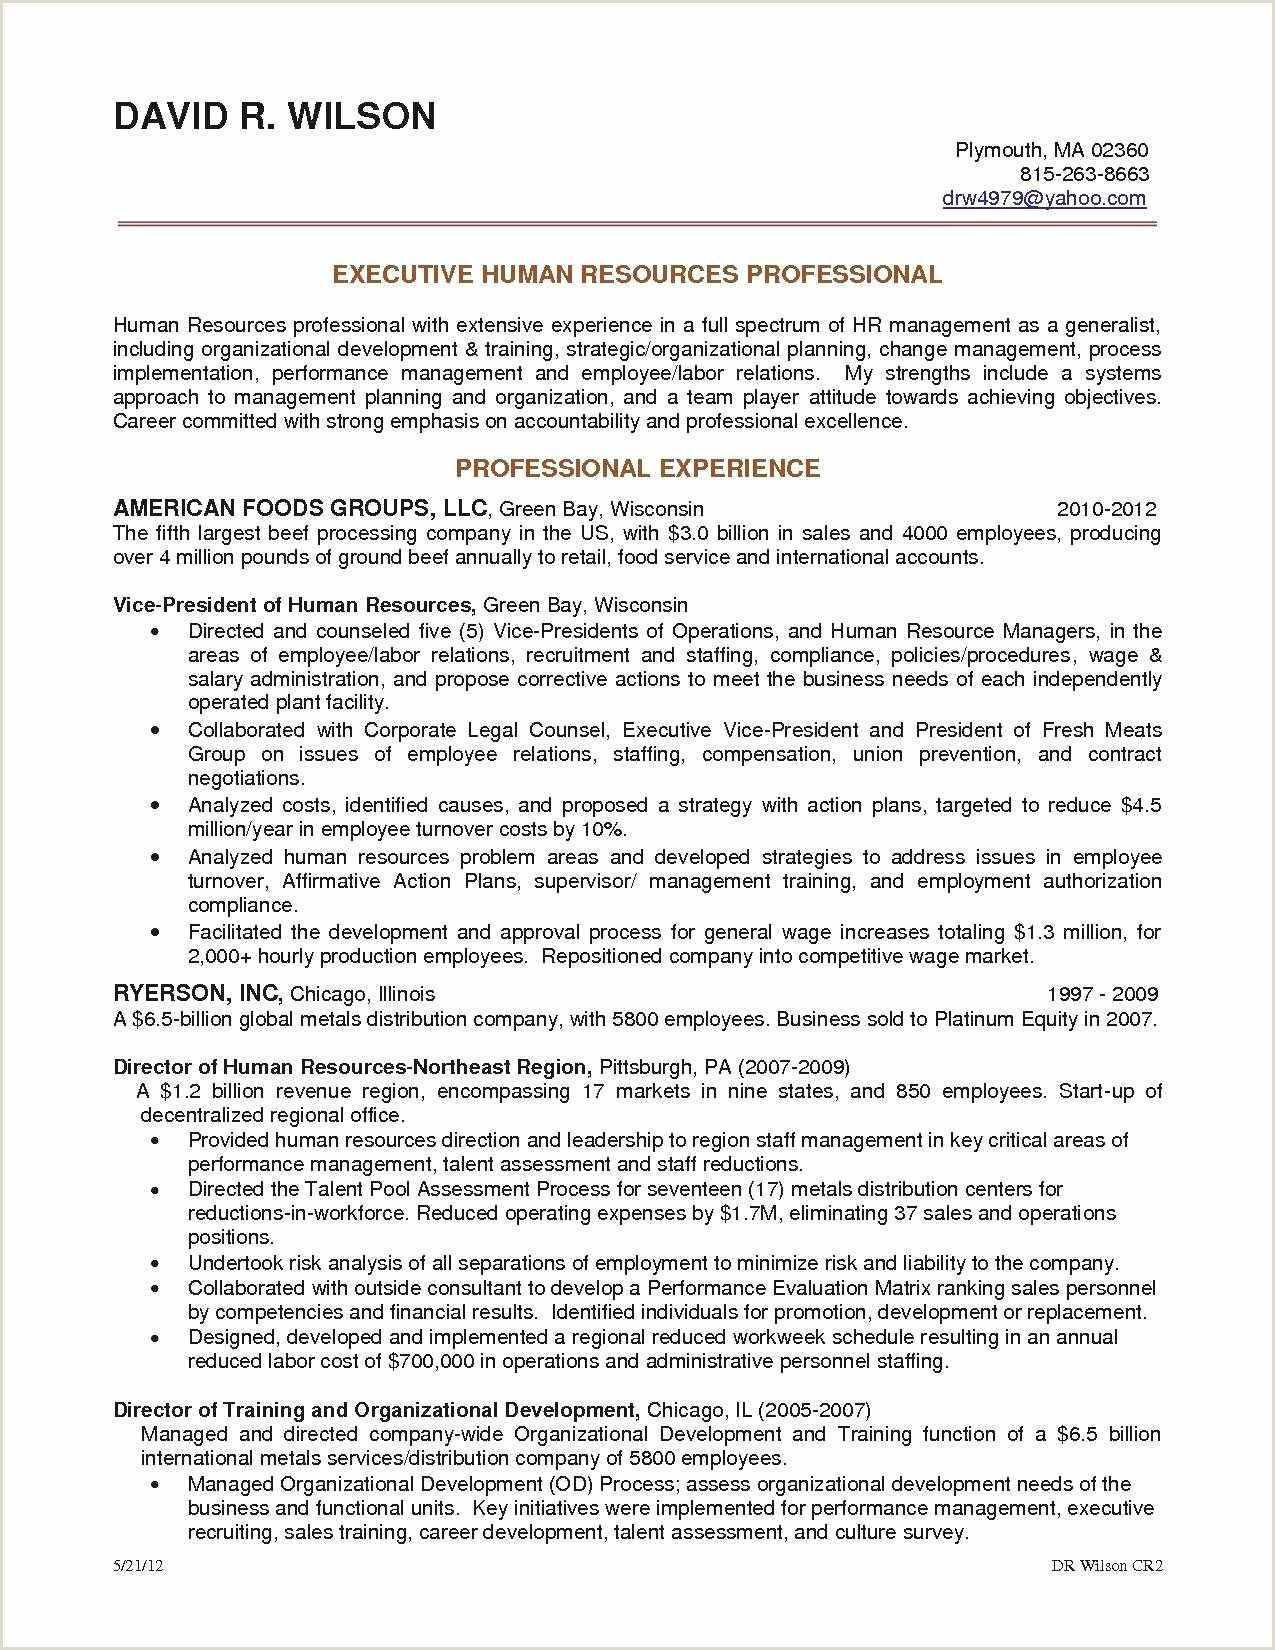 Accounts Manager Cover Letter Unique Account Manager Cover Letter — Kenbachor Kenbachor